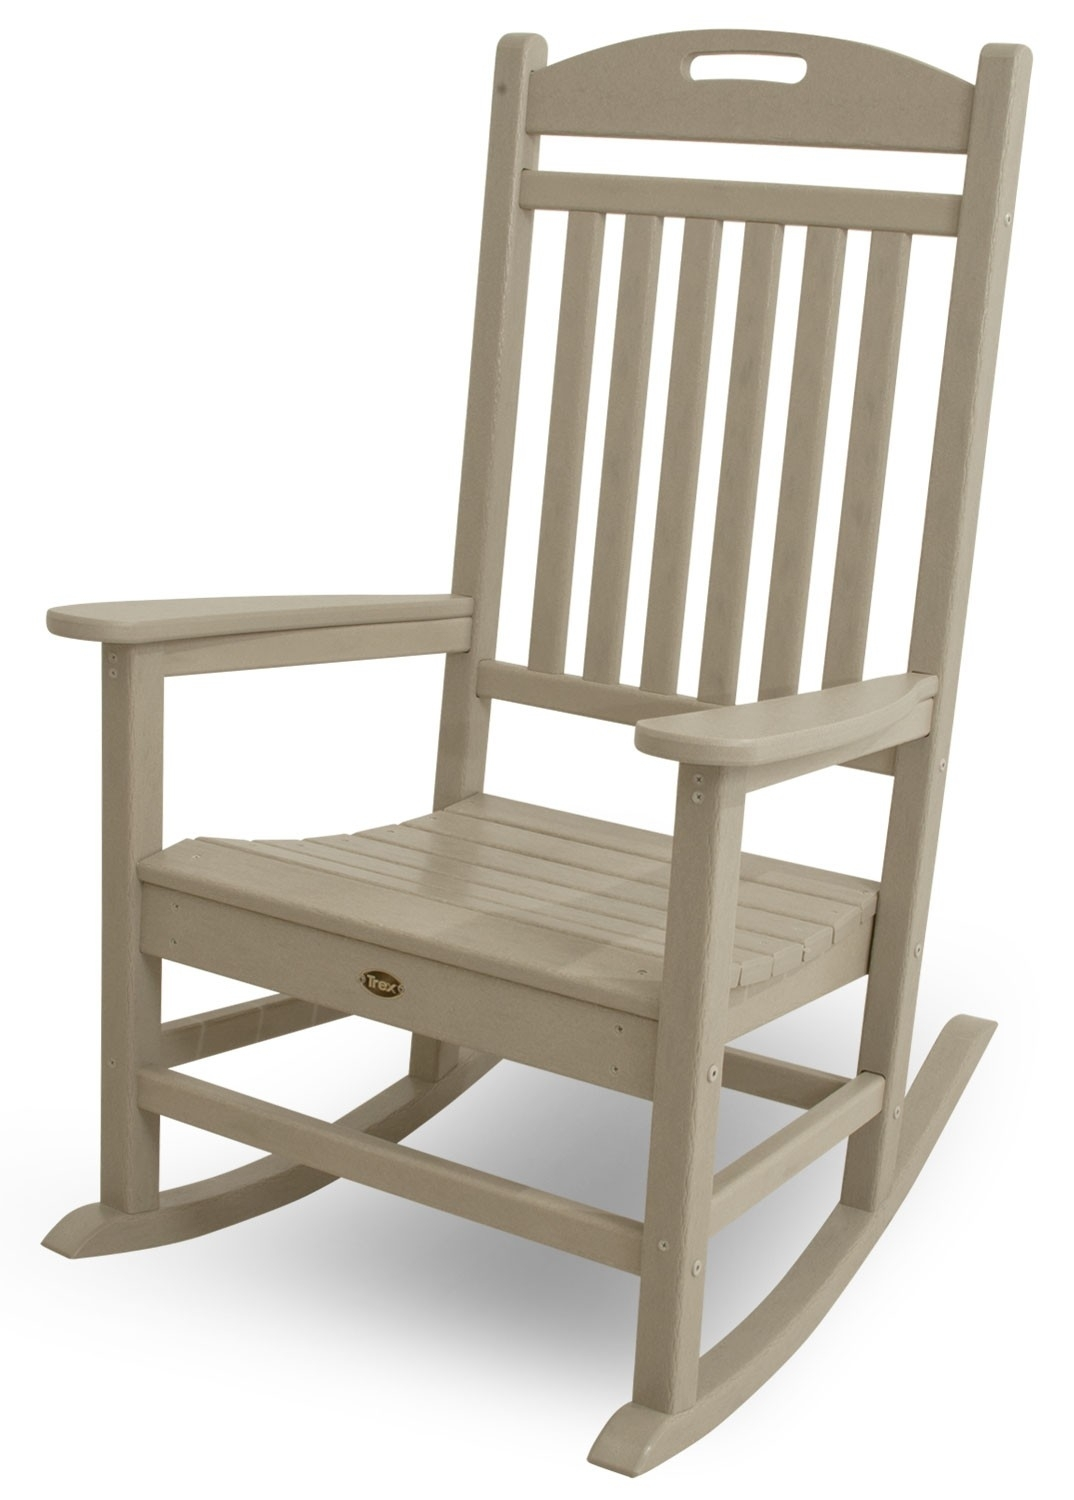 Yacht Club Rocking Chair Pertaining To Rocking Chairs For Adults (#15 of 15)